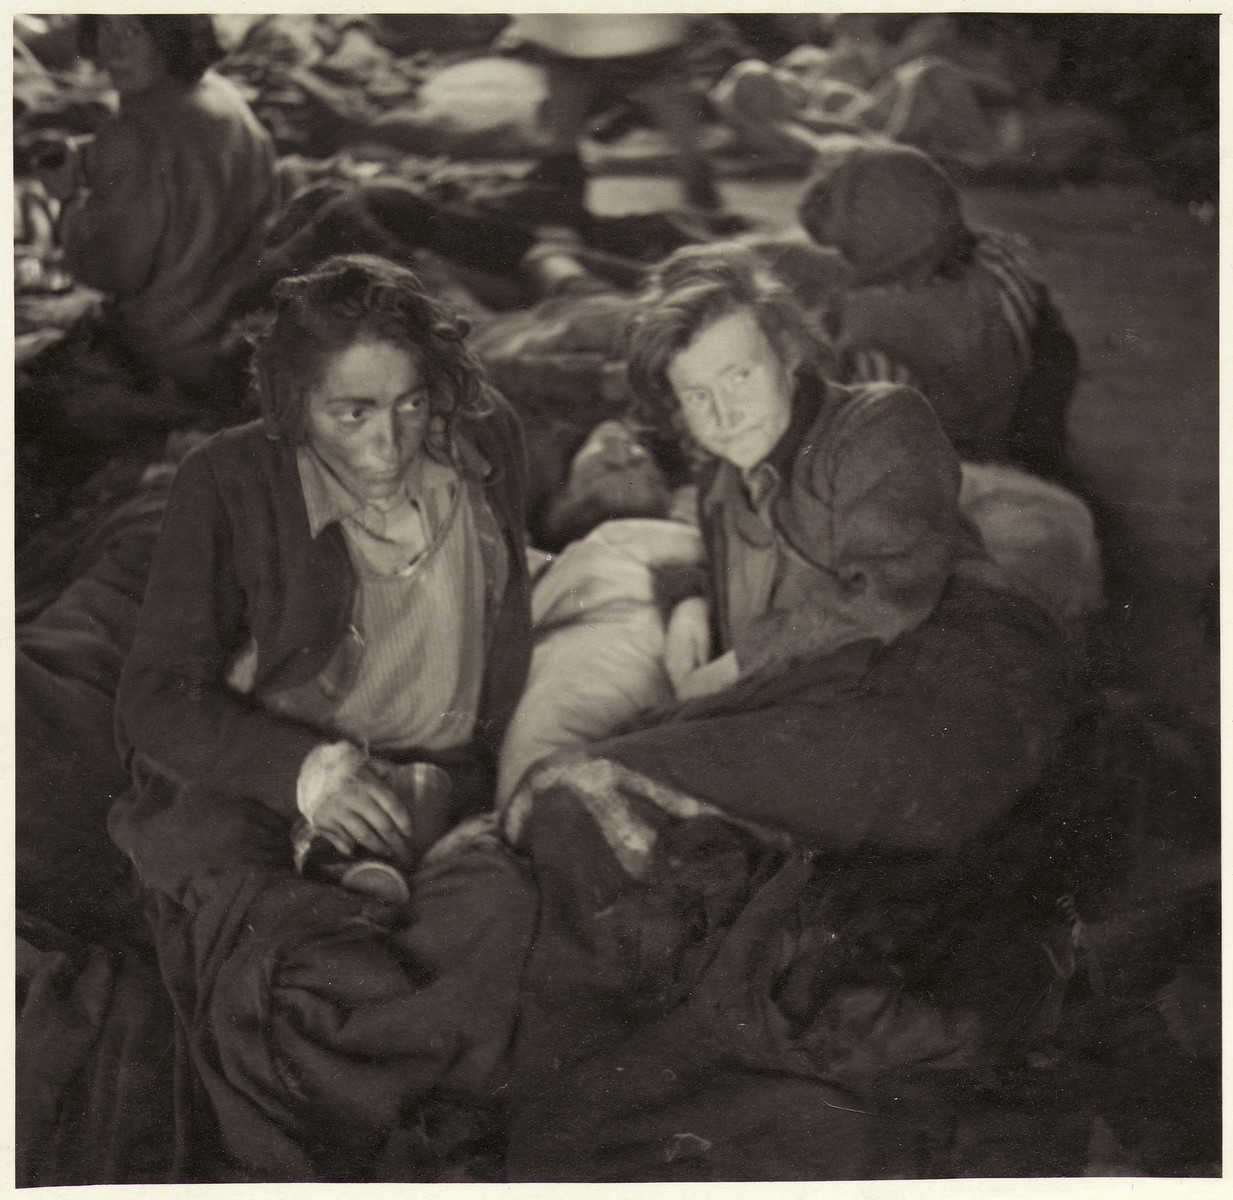 Female survivors lie, covered in blankets, on the floor of a barracks in the Bergen-Belsen concentration camp.